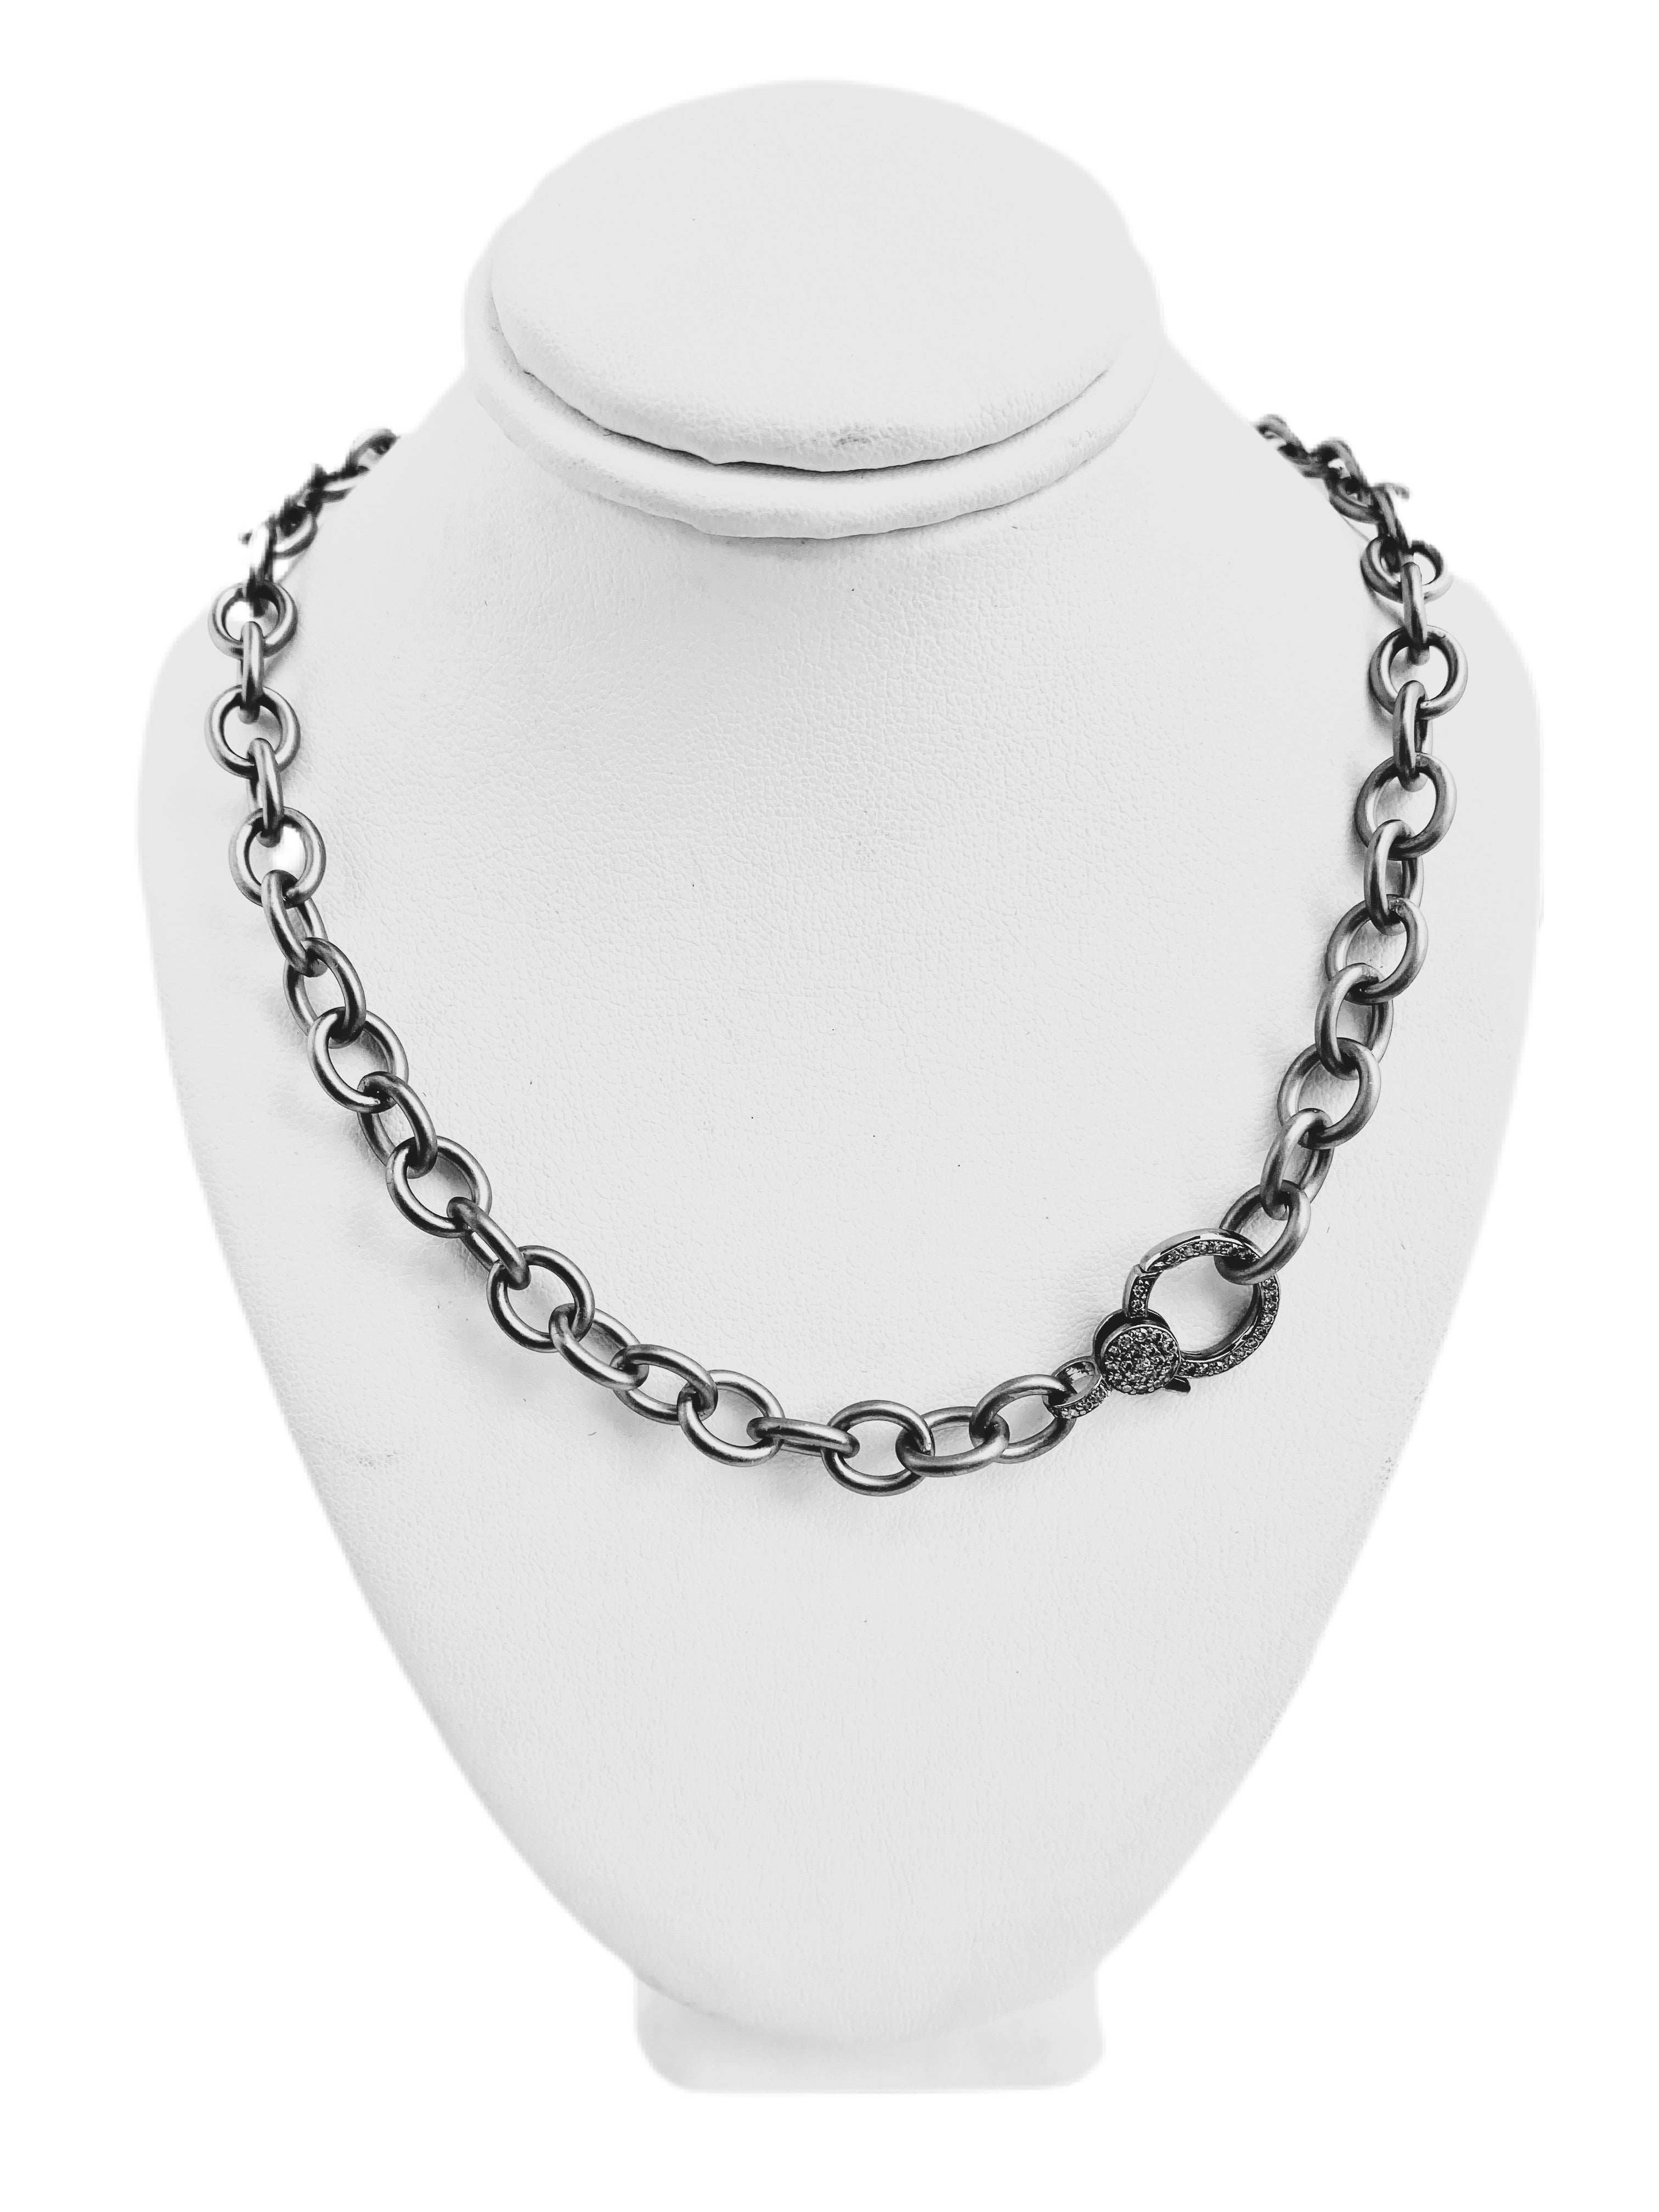 "S.Row Designs 18"" Sterling Silver Necklace with Diamond Clasp"